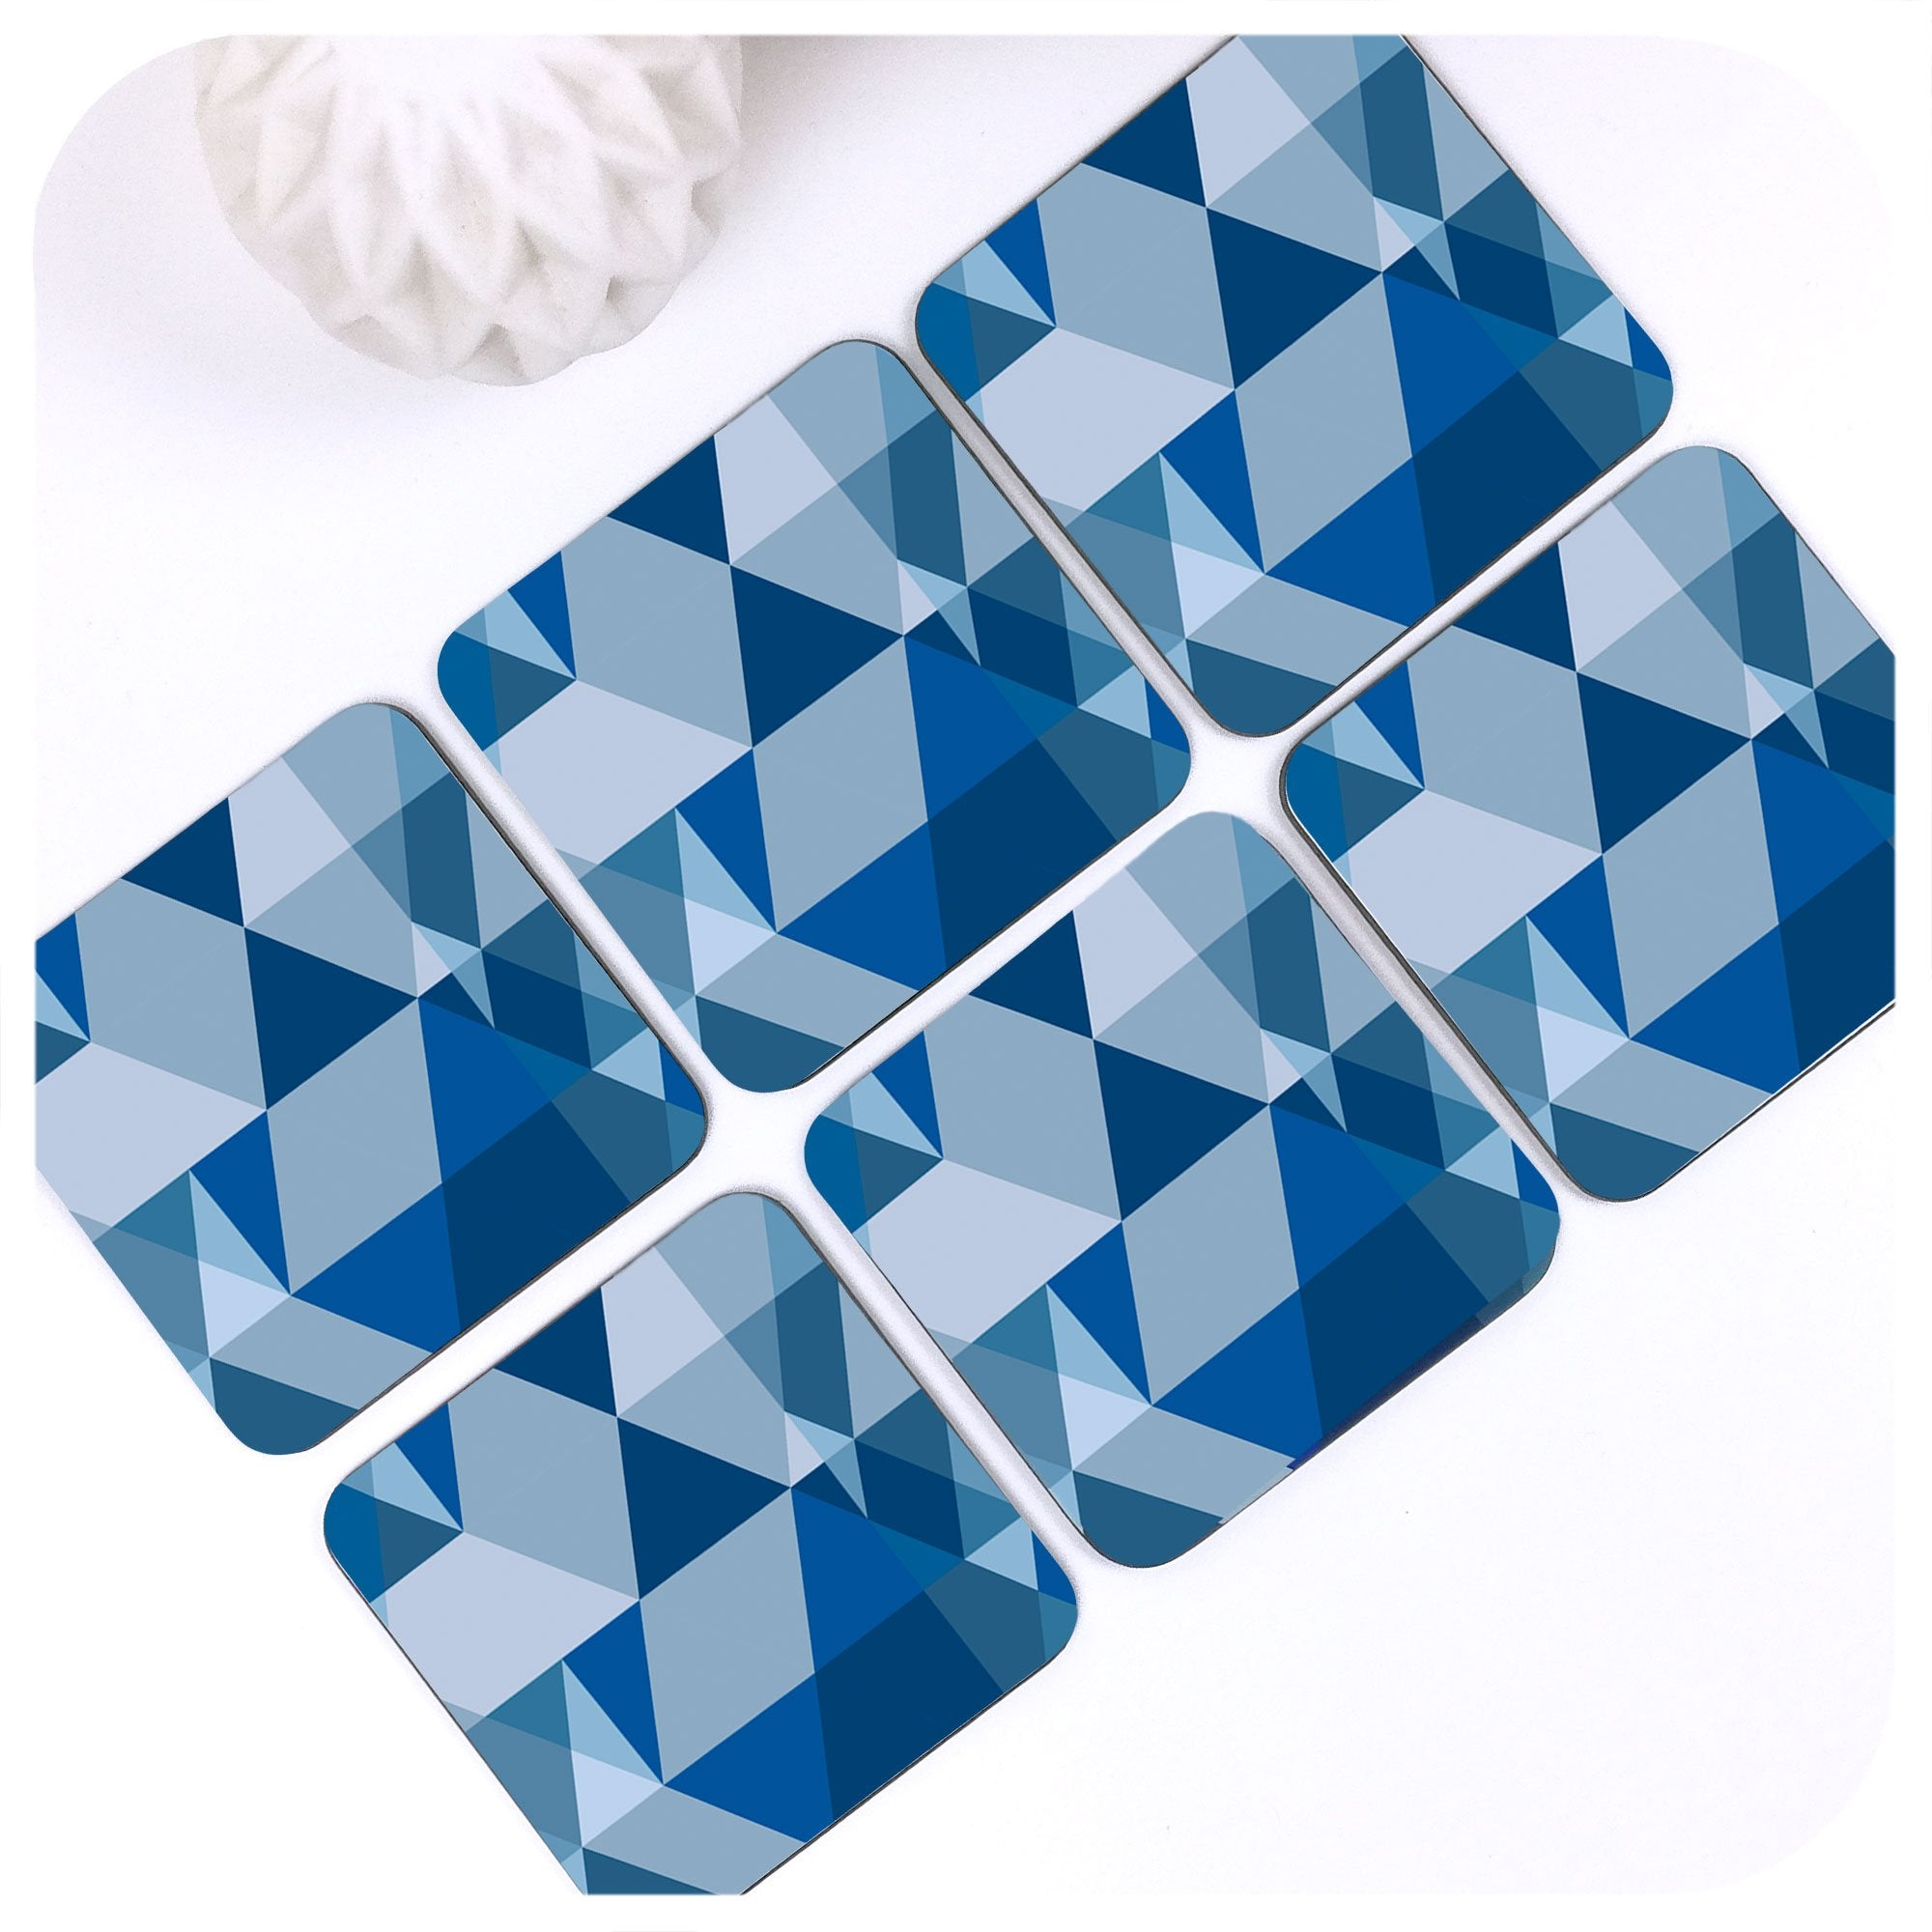 Scandi Geometric Coasters in Blue, set of 6 | The Inkabilly Emporium